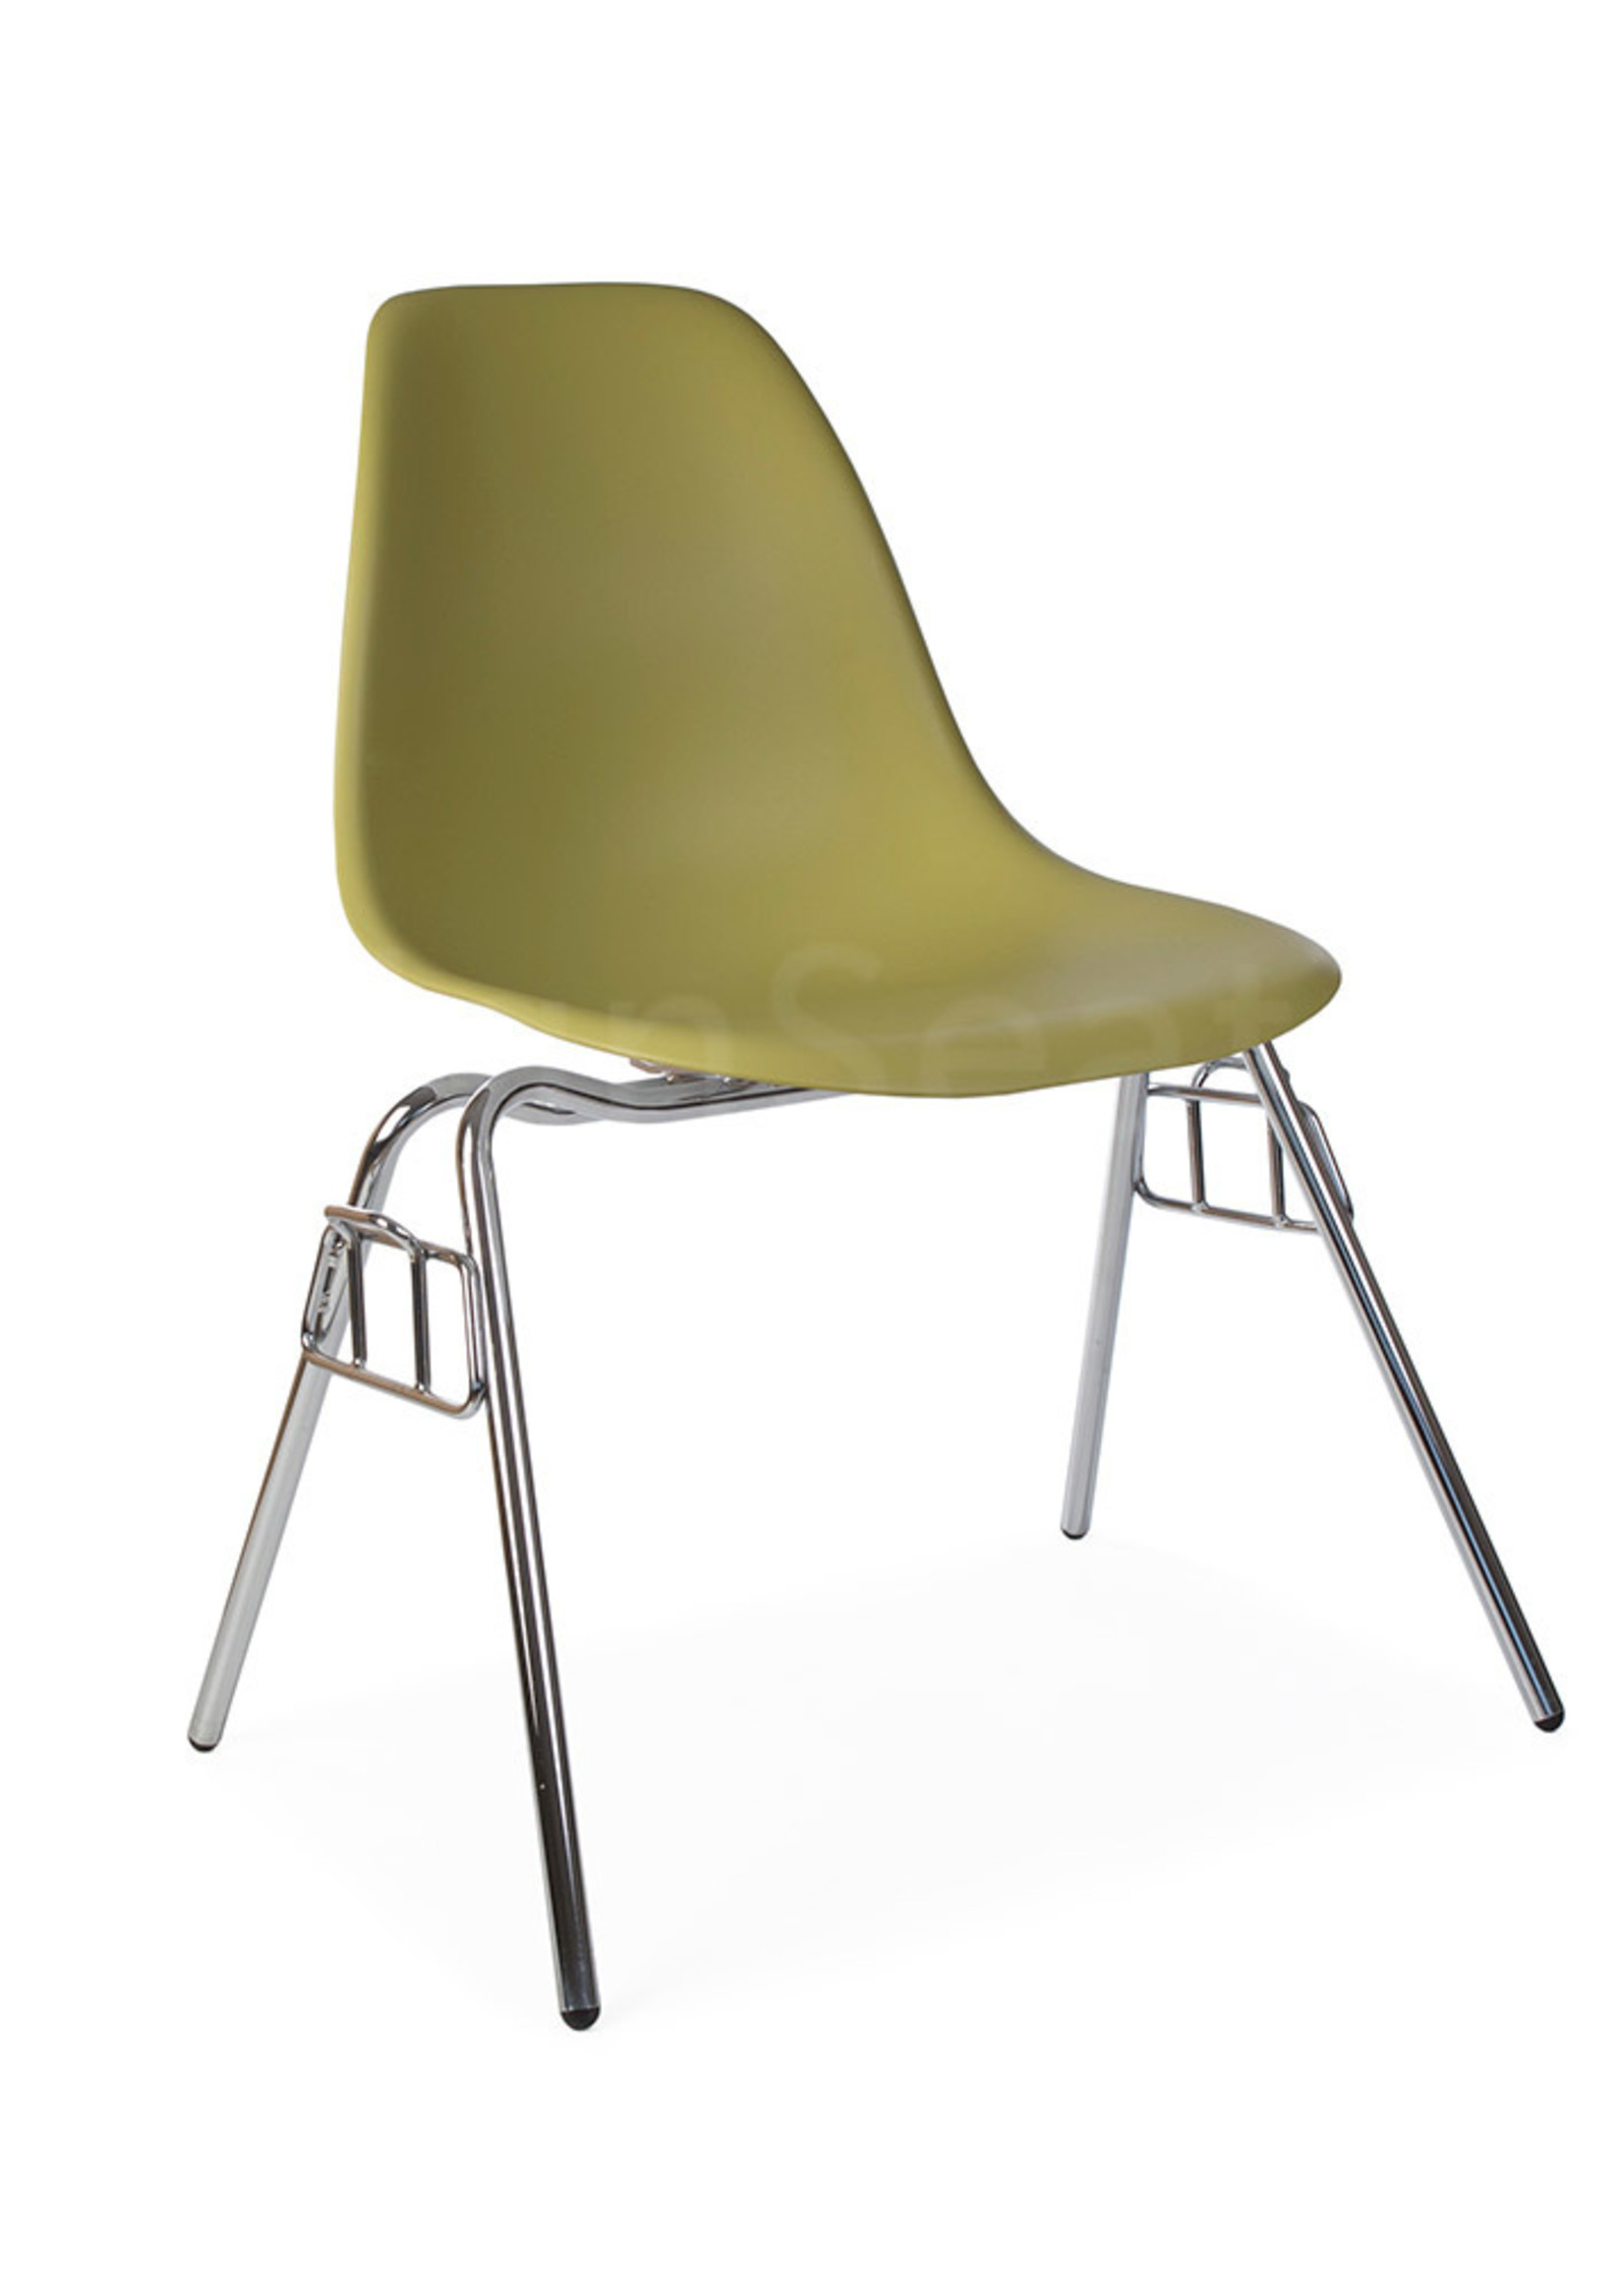 DSS Stacking Chair Dining Chair Green